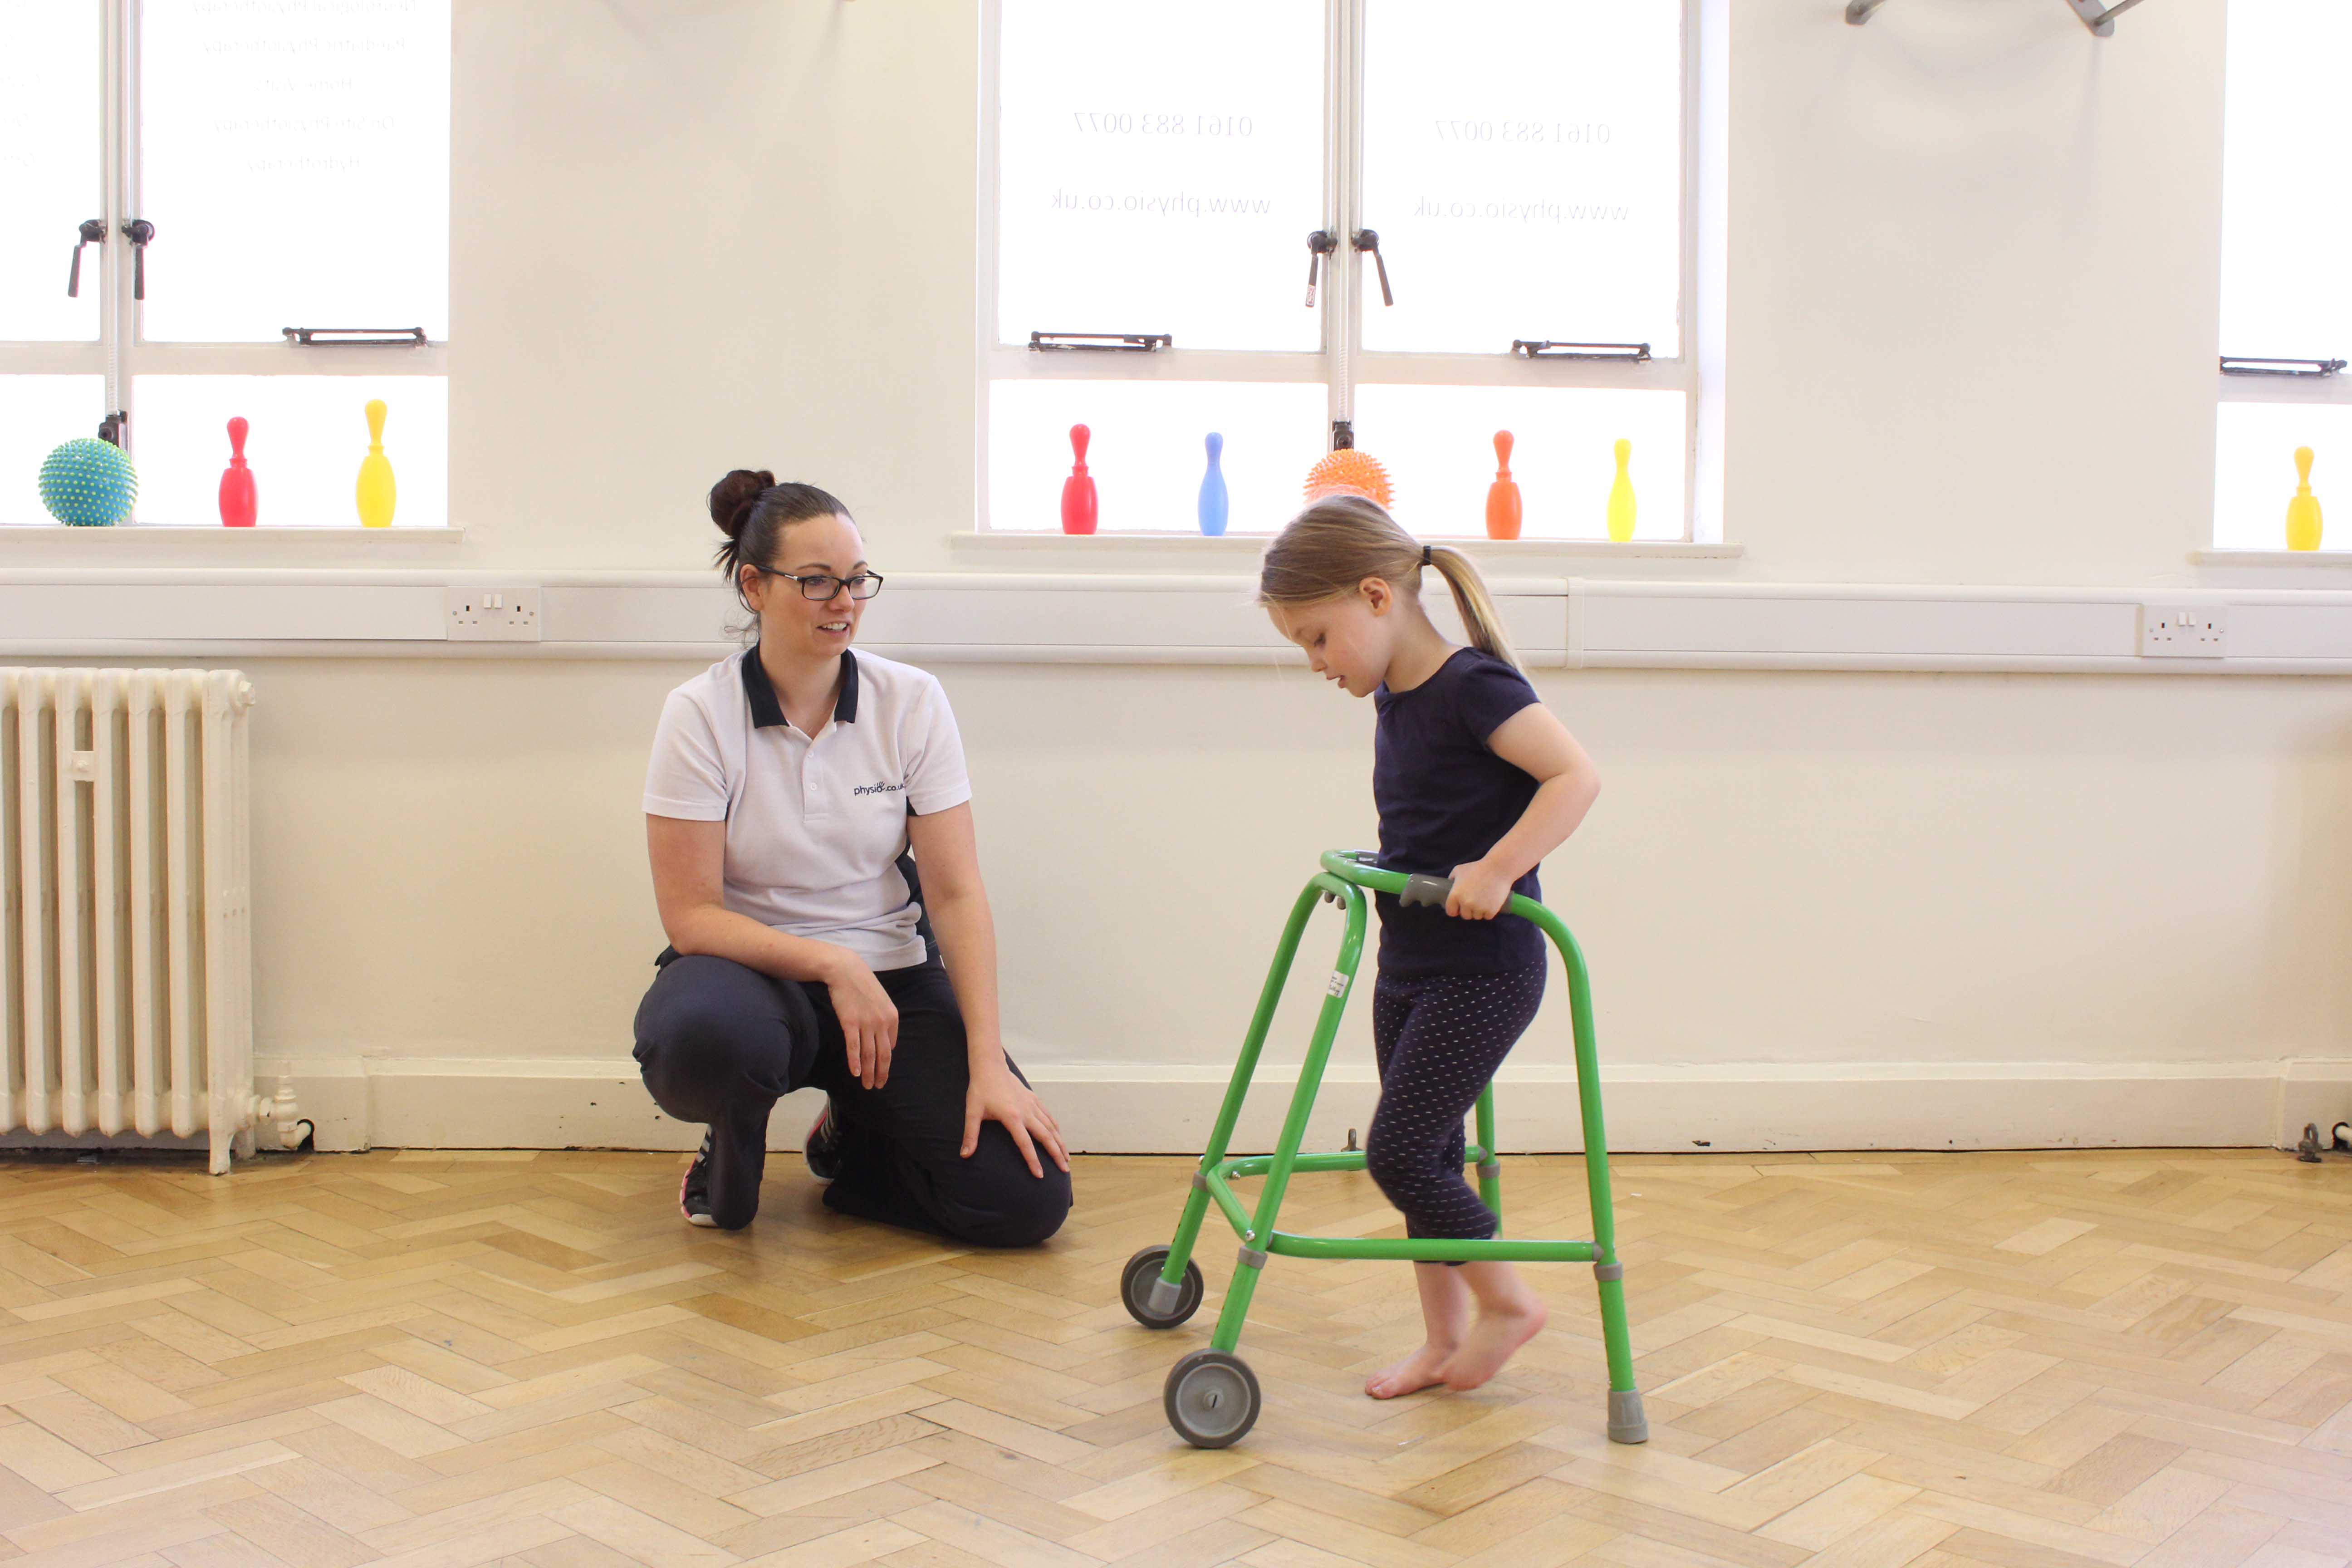 Gait re-education using a wheeled walking frame under close supervision of specilist Paediatric Physiotherapist